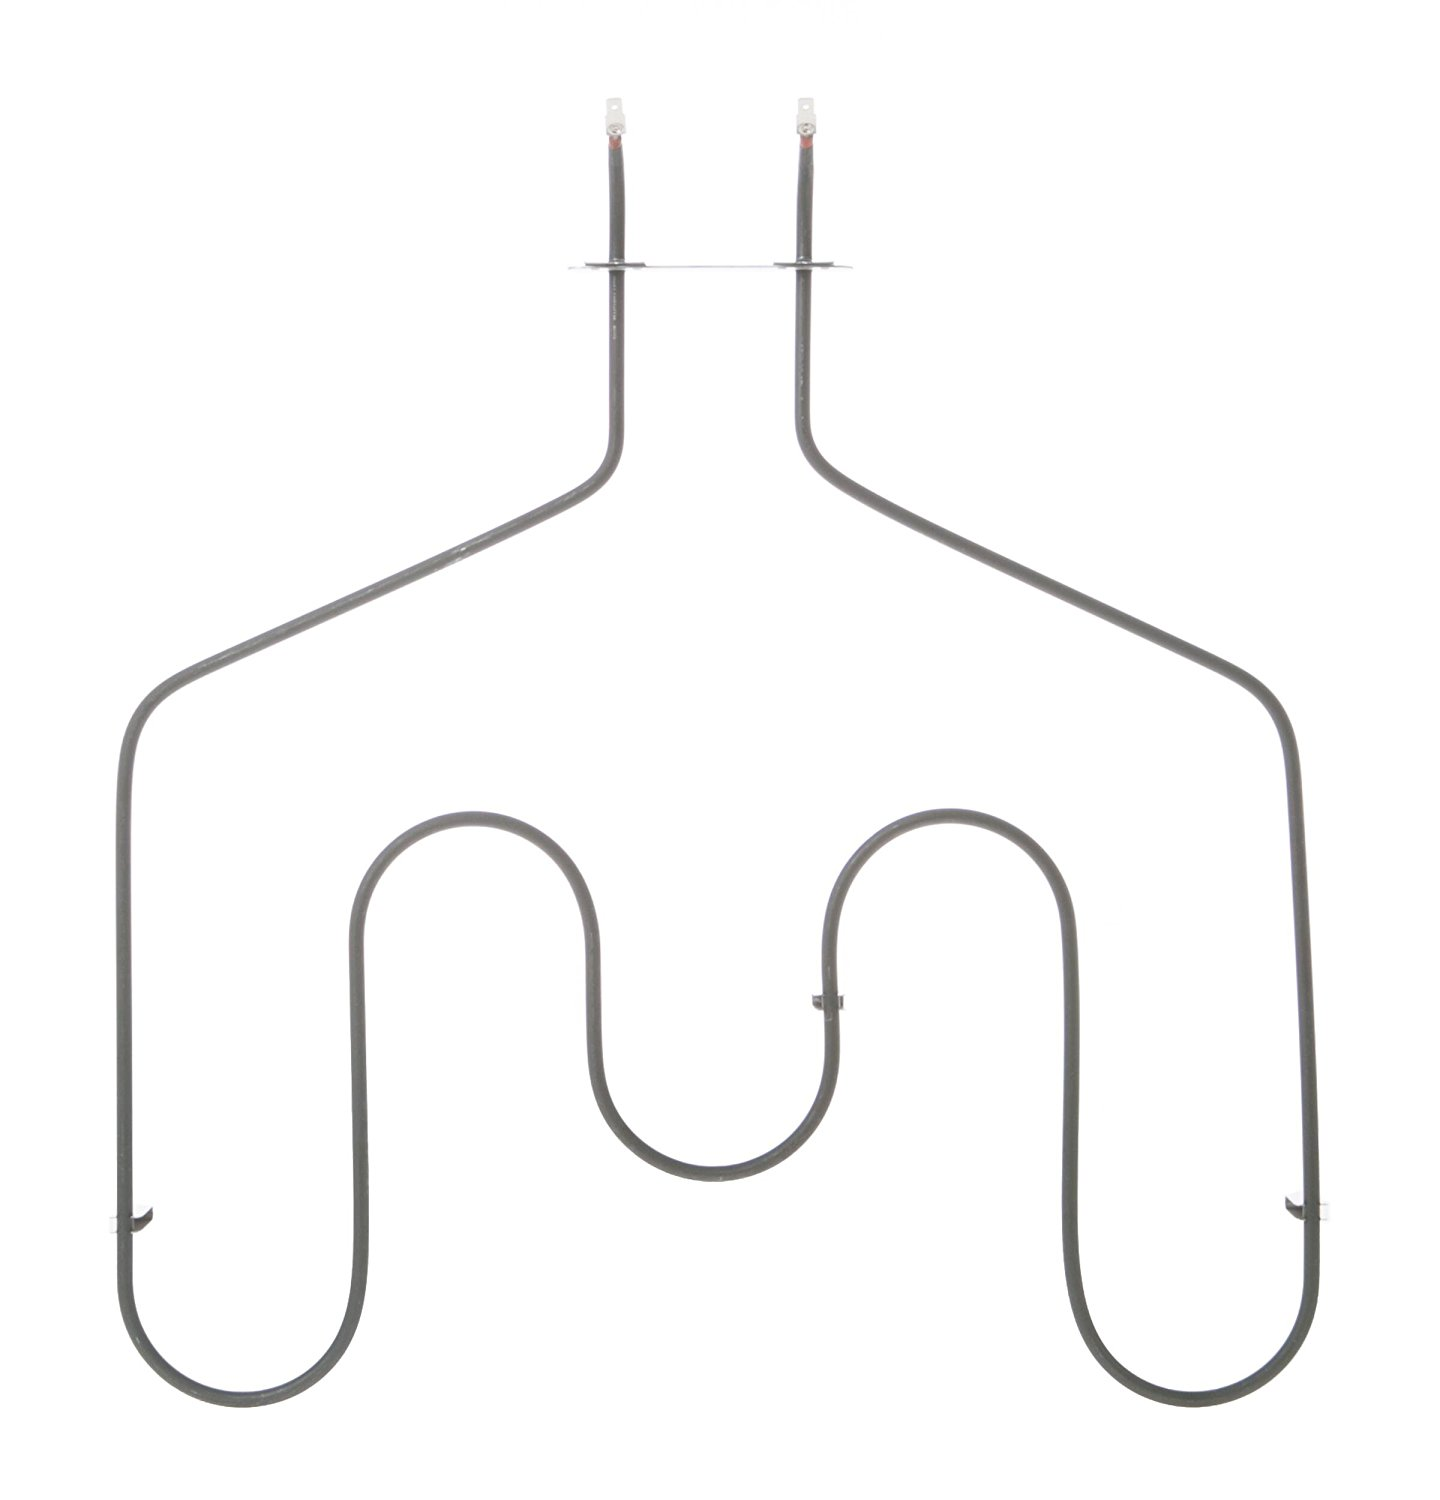 Neral Electric Wb44t Electric Oven Bake Element 240